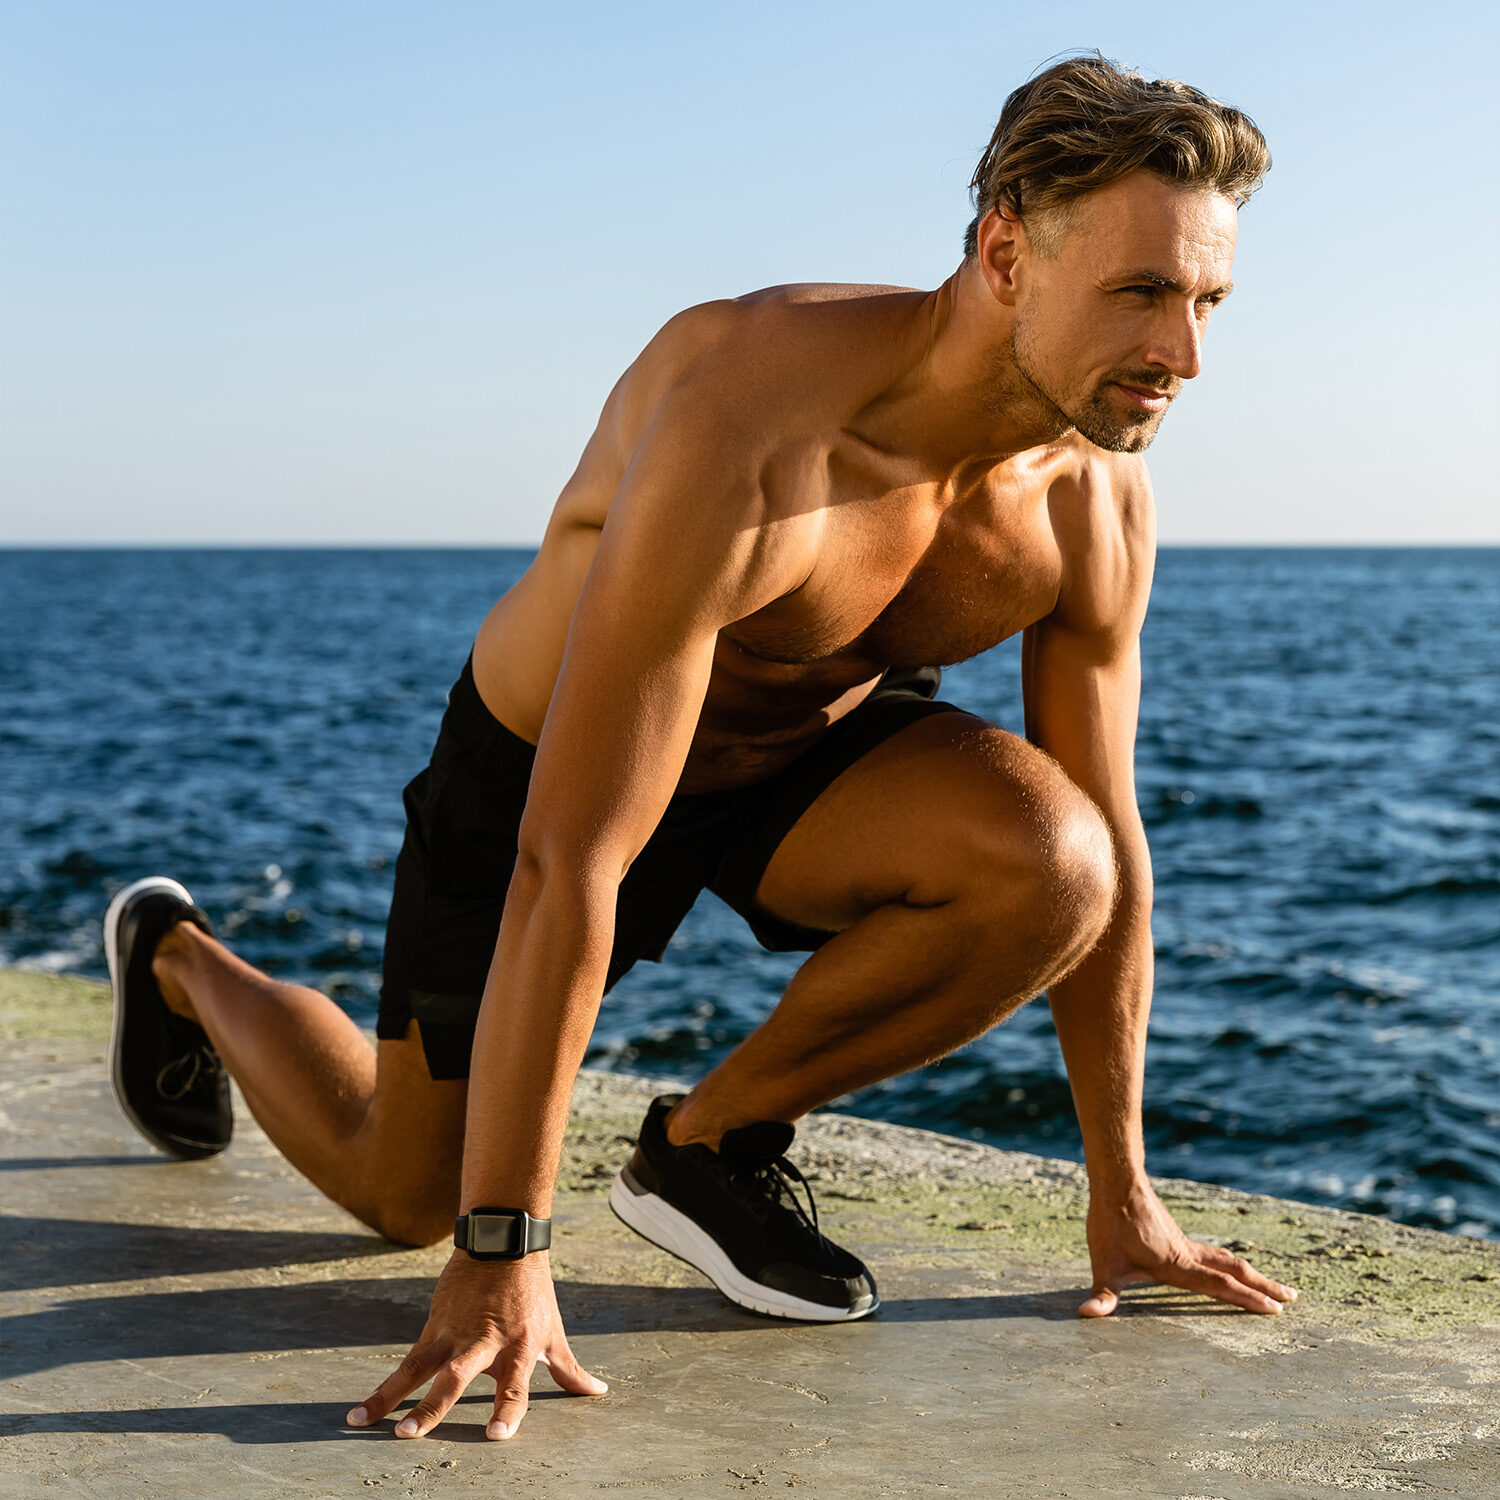 handsome-adult-shirtless-sportsman-exercising-on-s-465AWG3S